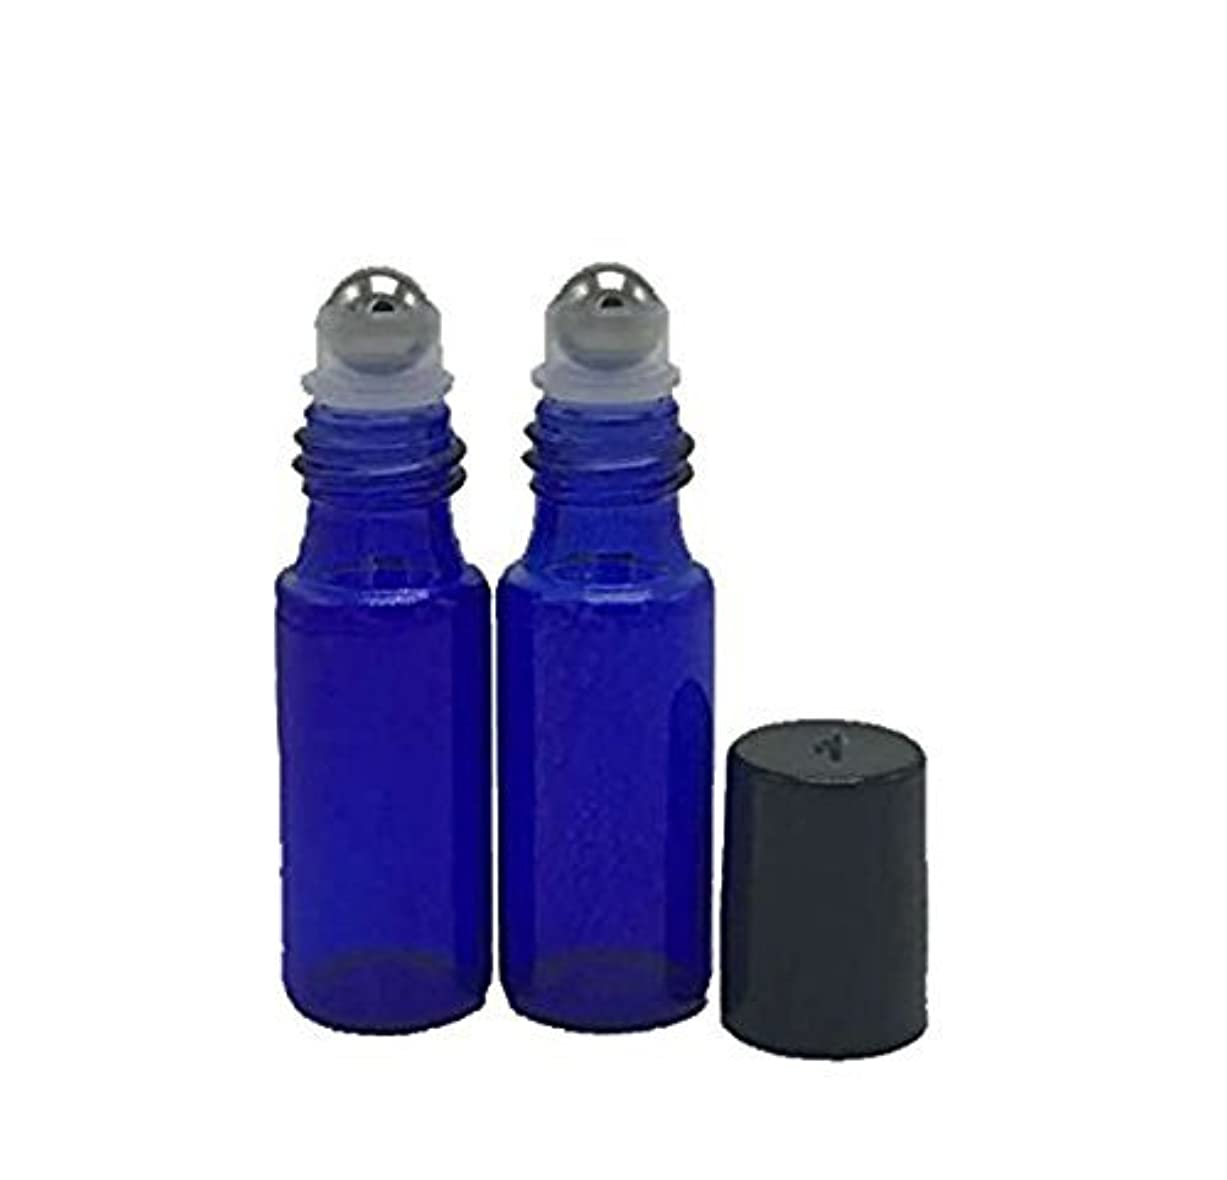 ハンディキャップ掘るファシズムHaifly 12 Pcs 5 ml Empty Refillable Rollerball Glass Bottles for Essential Oil with 3 ml Dropper Blue [並行輸入品]